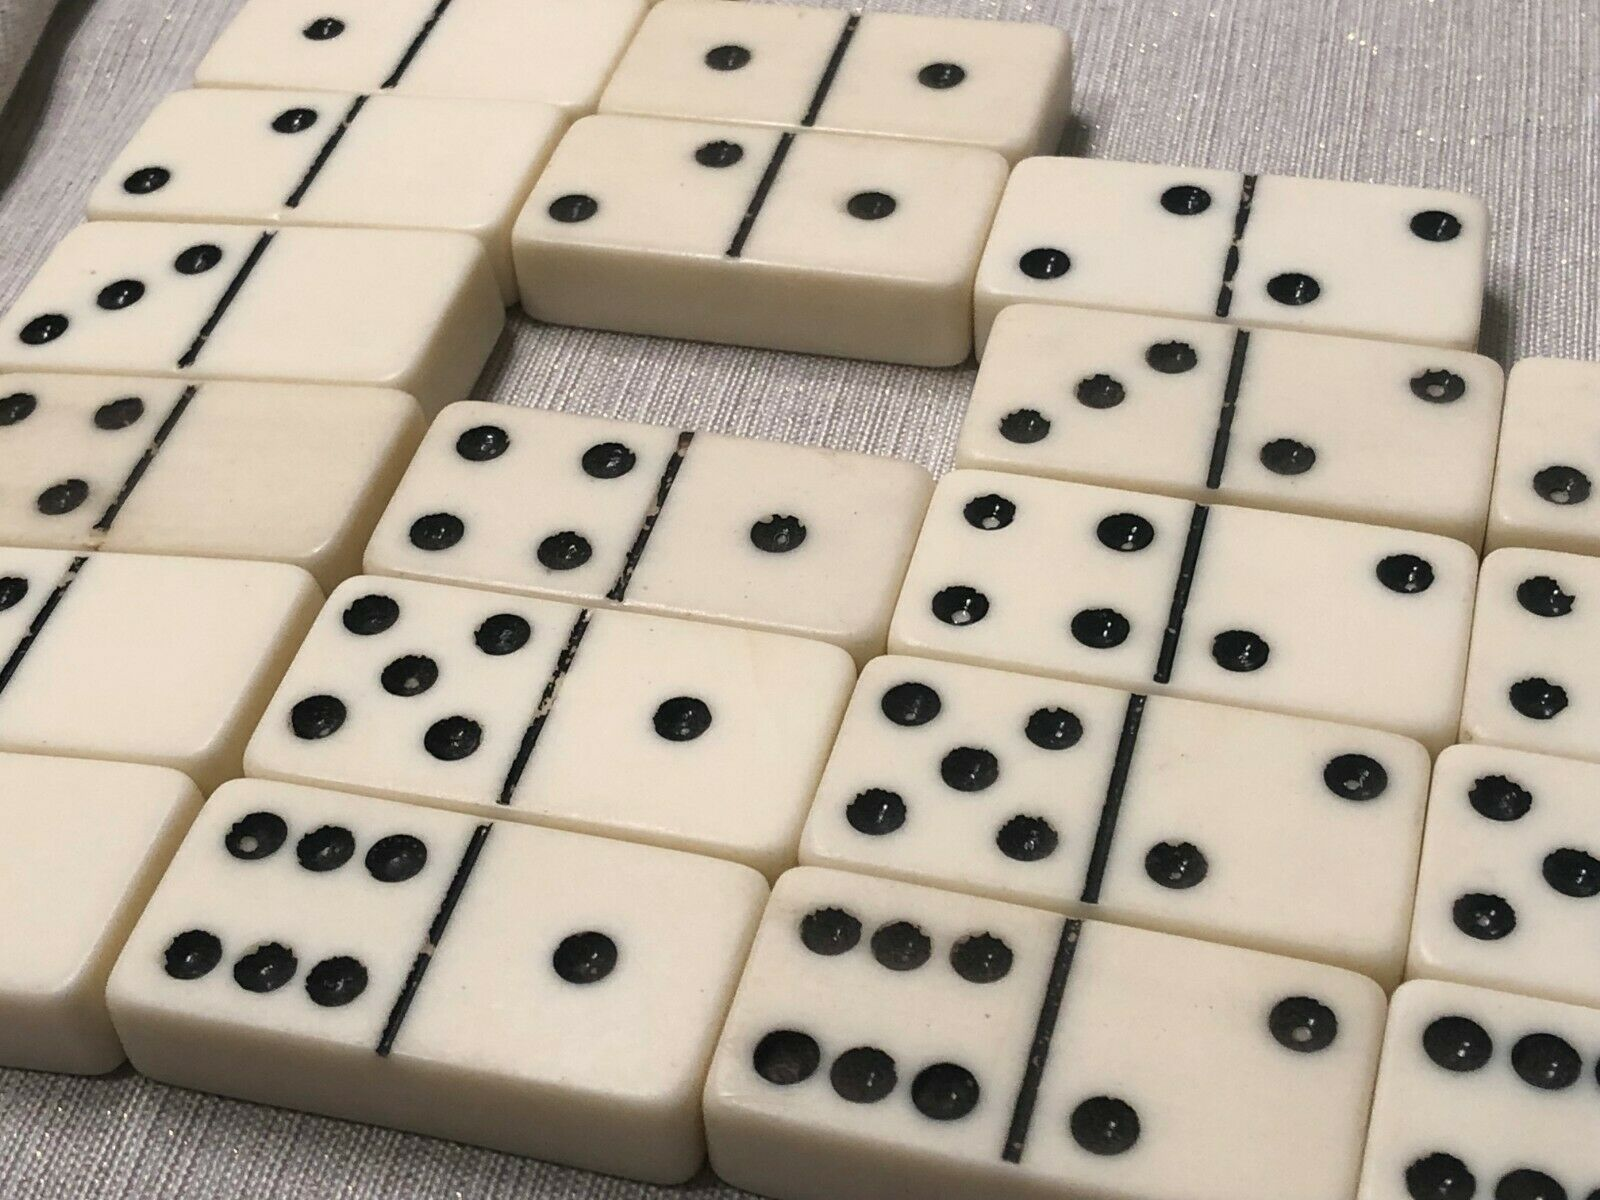 (27 of 28) Incomplete Vintage Double Six Dominoes Tiles Set Crafts Missing One